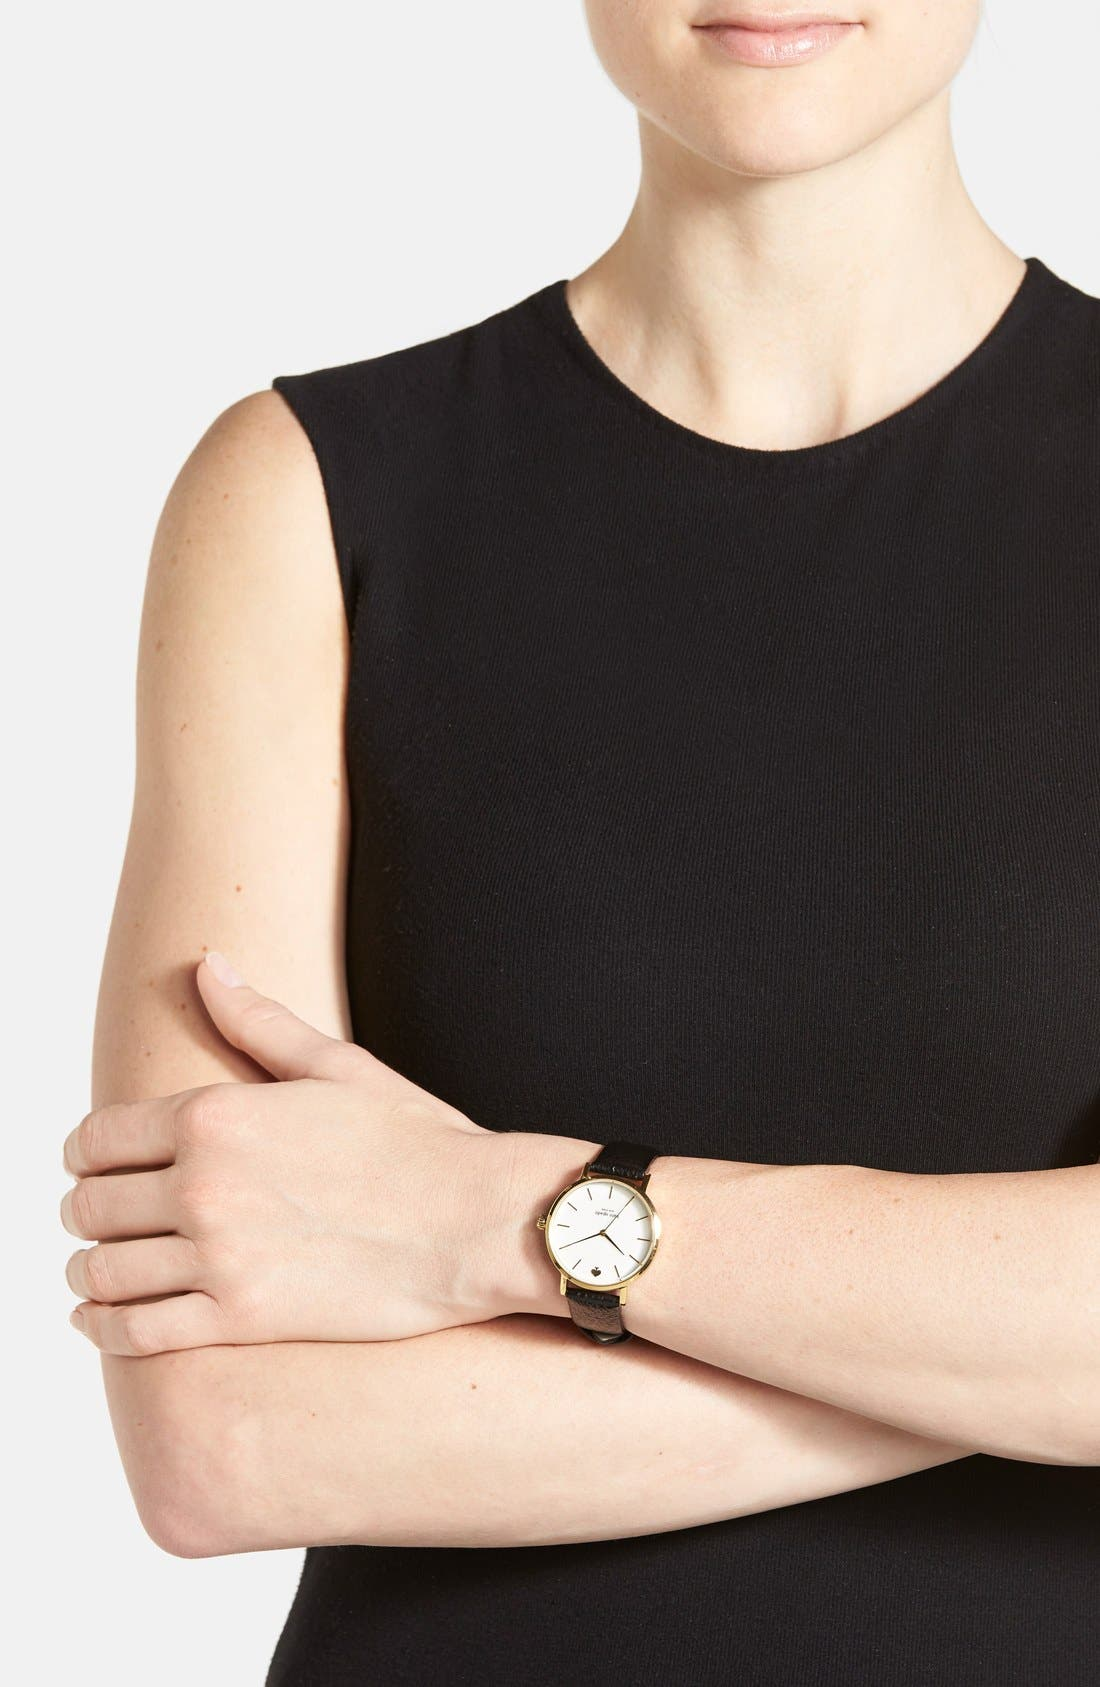 KATE SPADE NEW YORK,                             'metro' round leather strap watch, 34mm,                             Alternate thumbnail 3, color,                             001